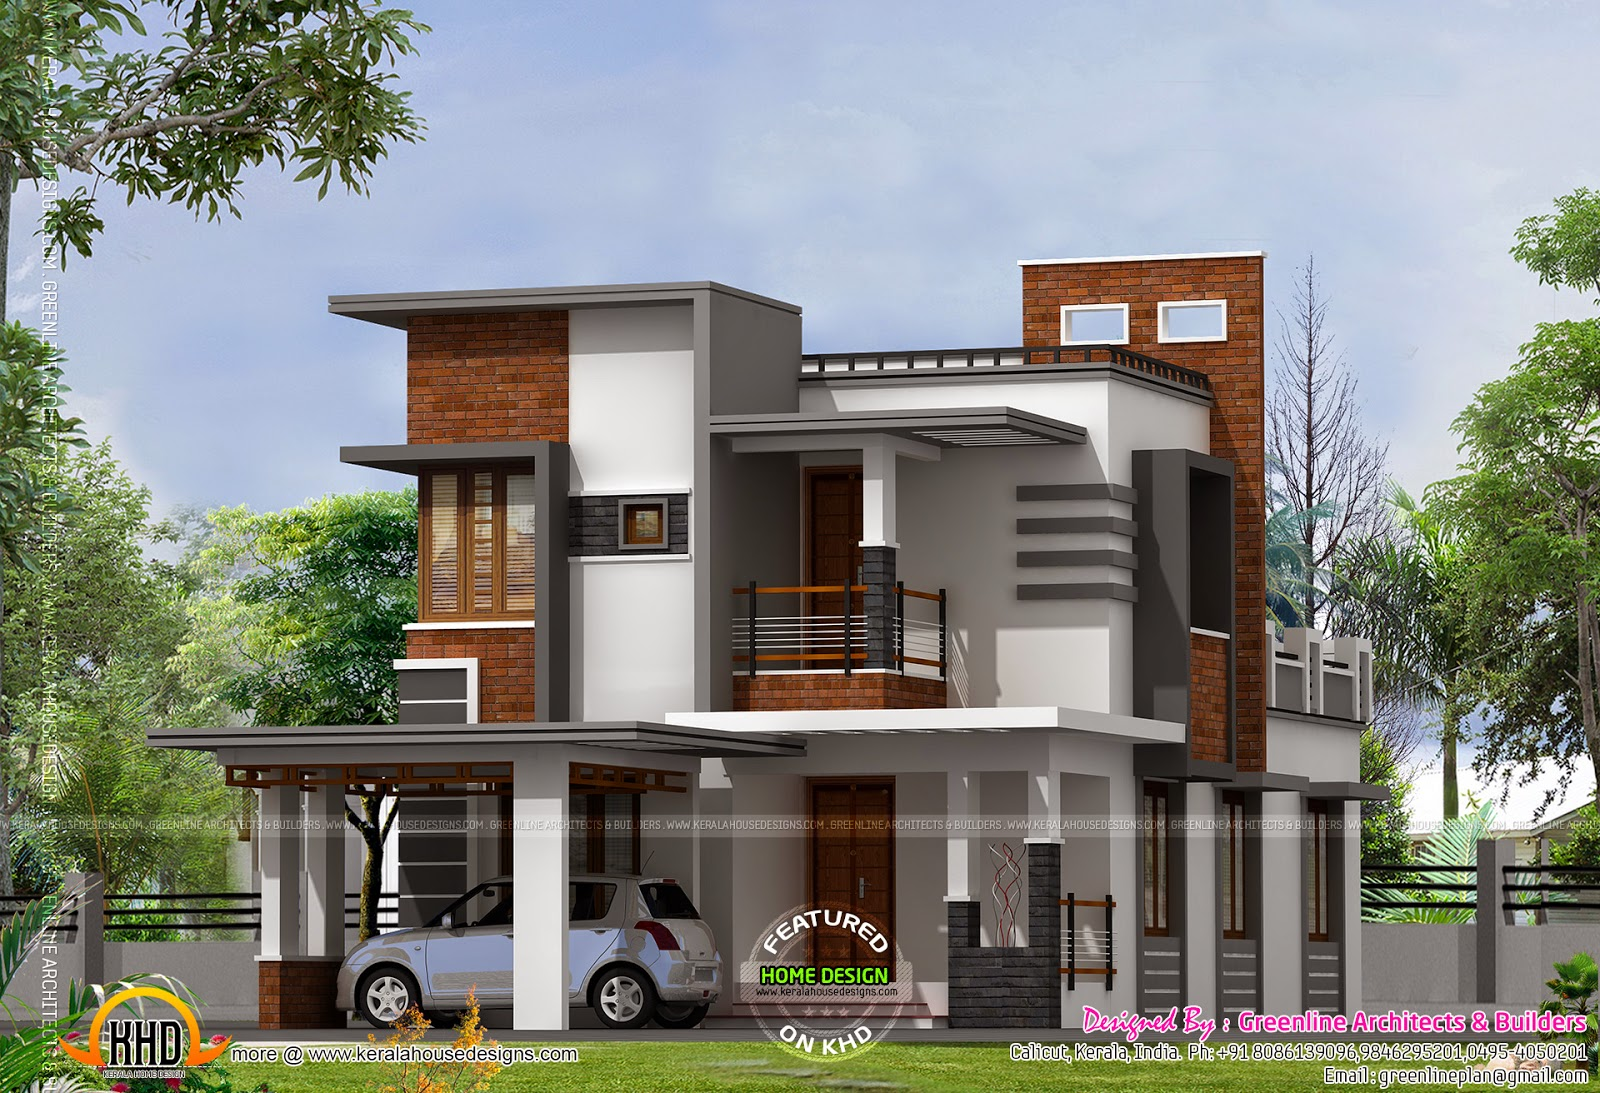 Low cost contemporary house kerala home design and floor for Home floor plans with estimated cost to build